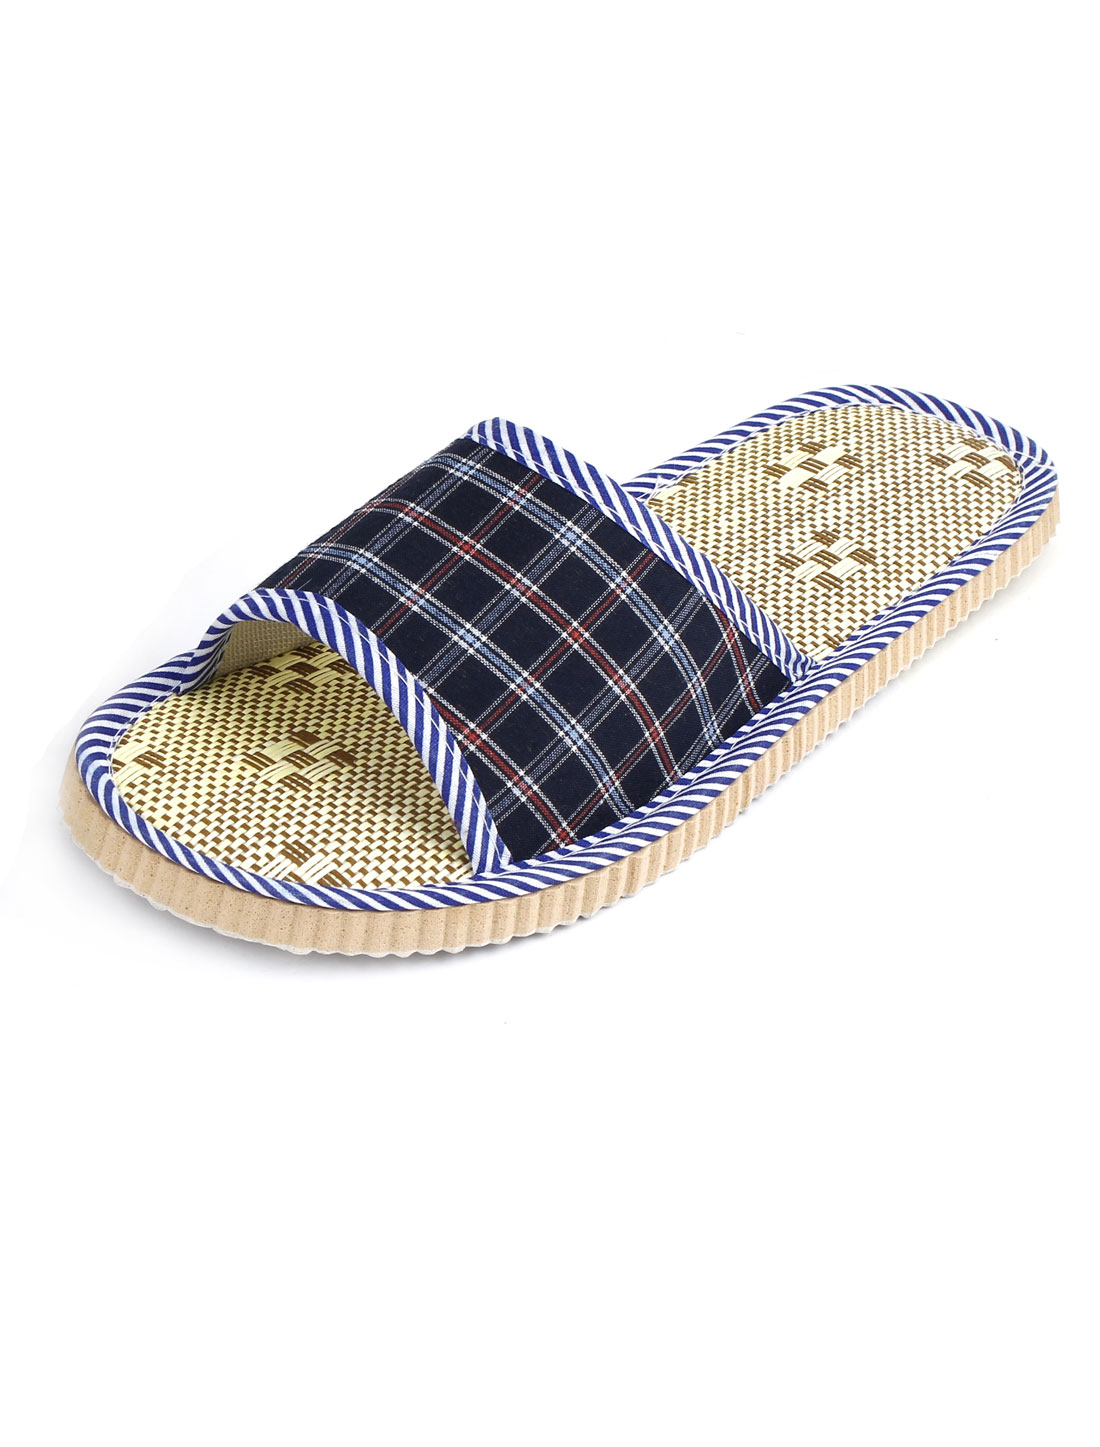 Pair Blue Outsole Plaids Pattern Home Flat Shoes Slippers for Man US 9